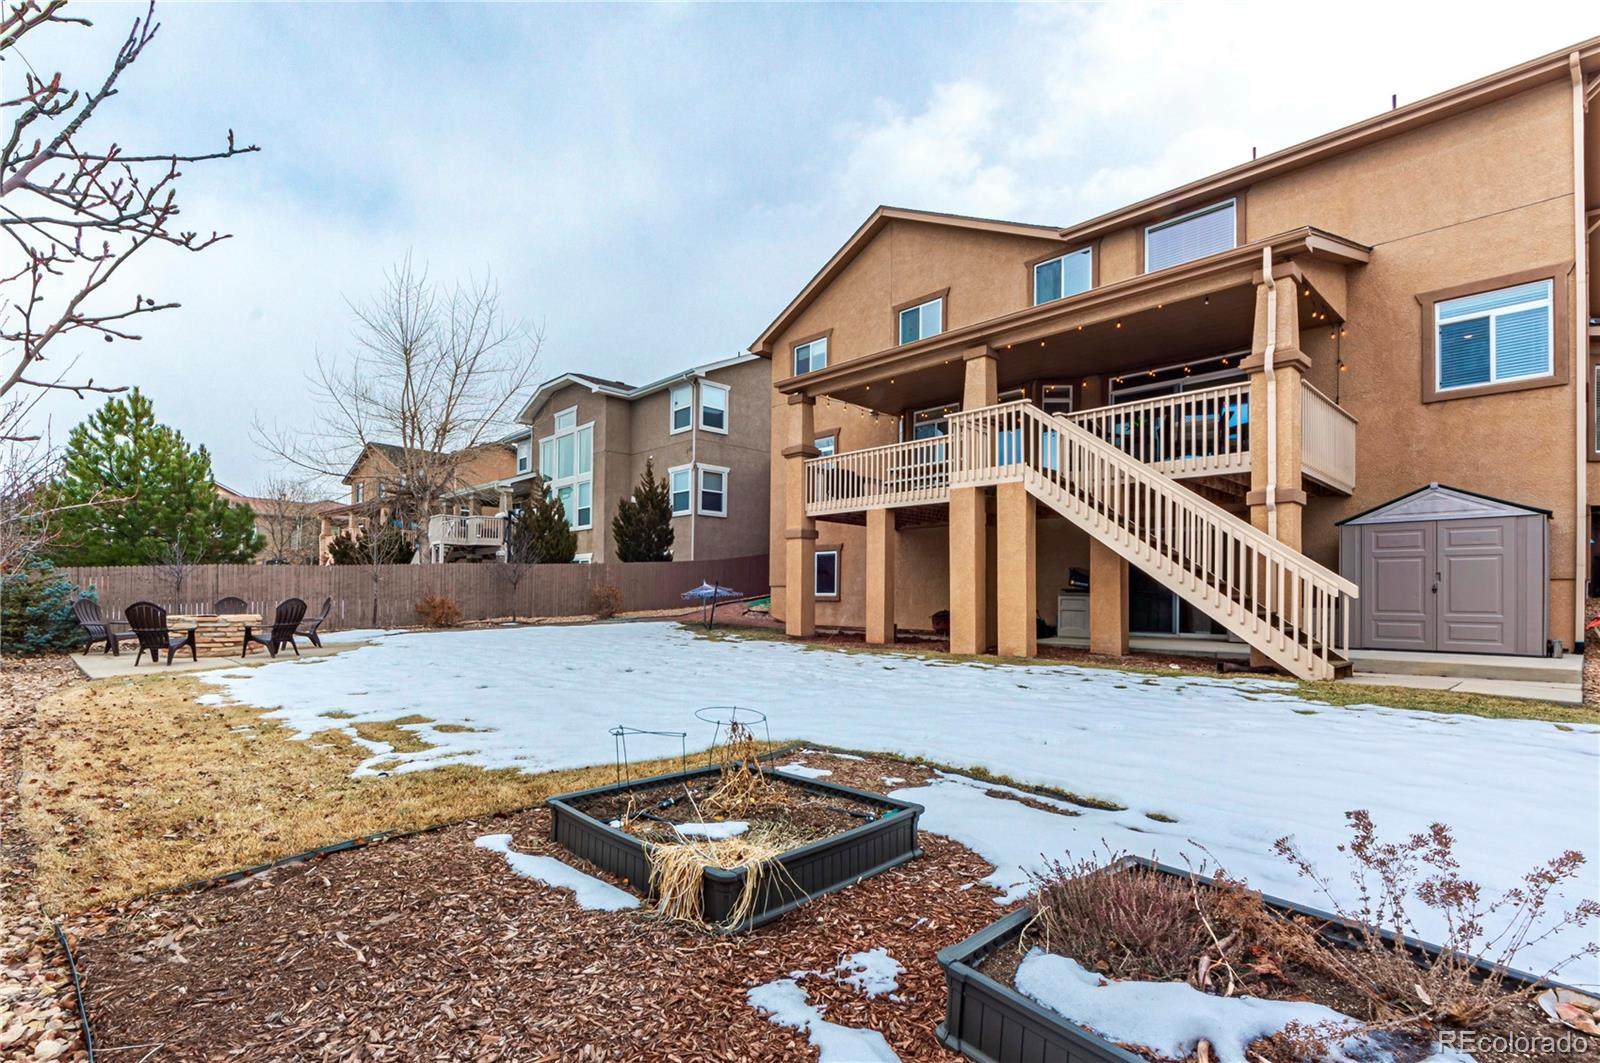 MLS# 3600079 - 37 - 9962 Pinedale Drive, Colorado Springs, CO 80920